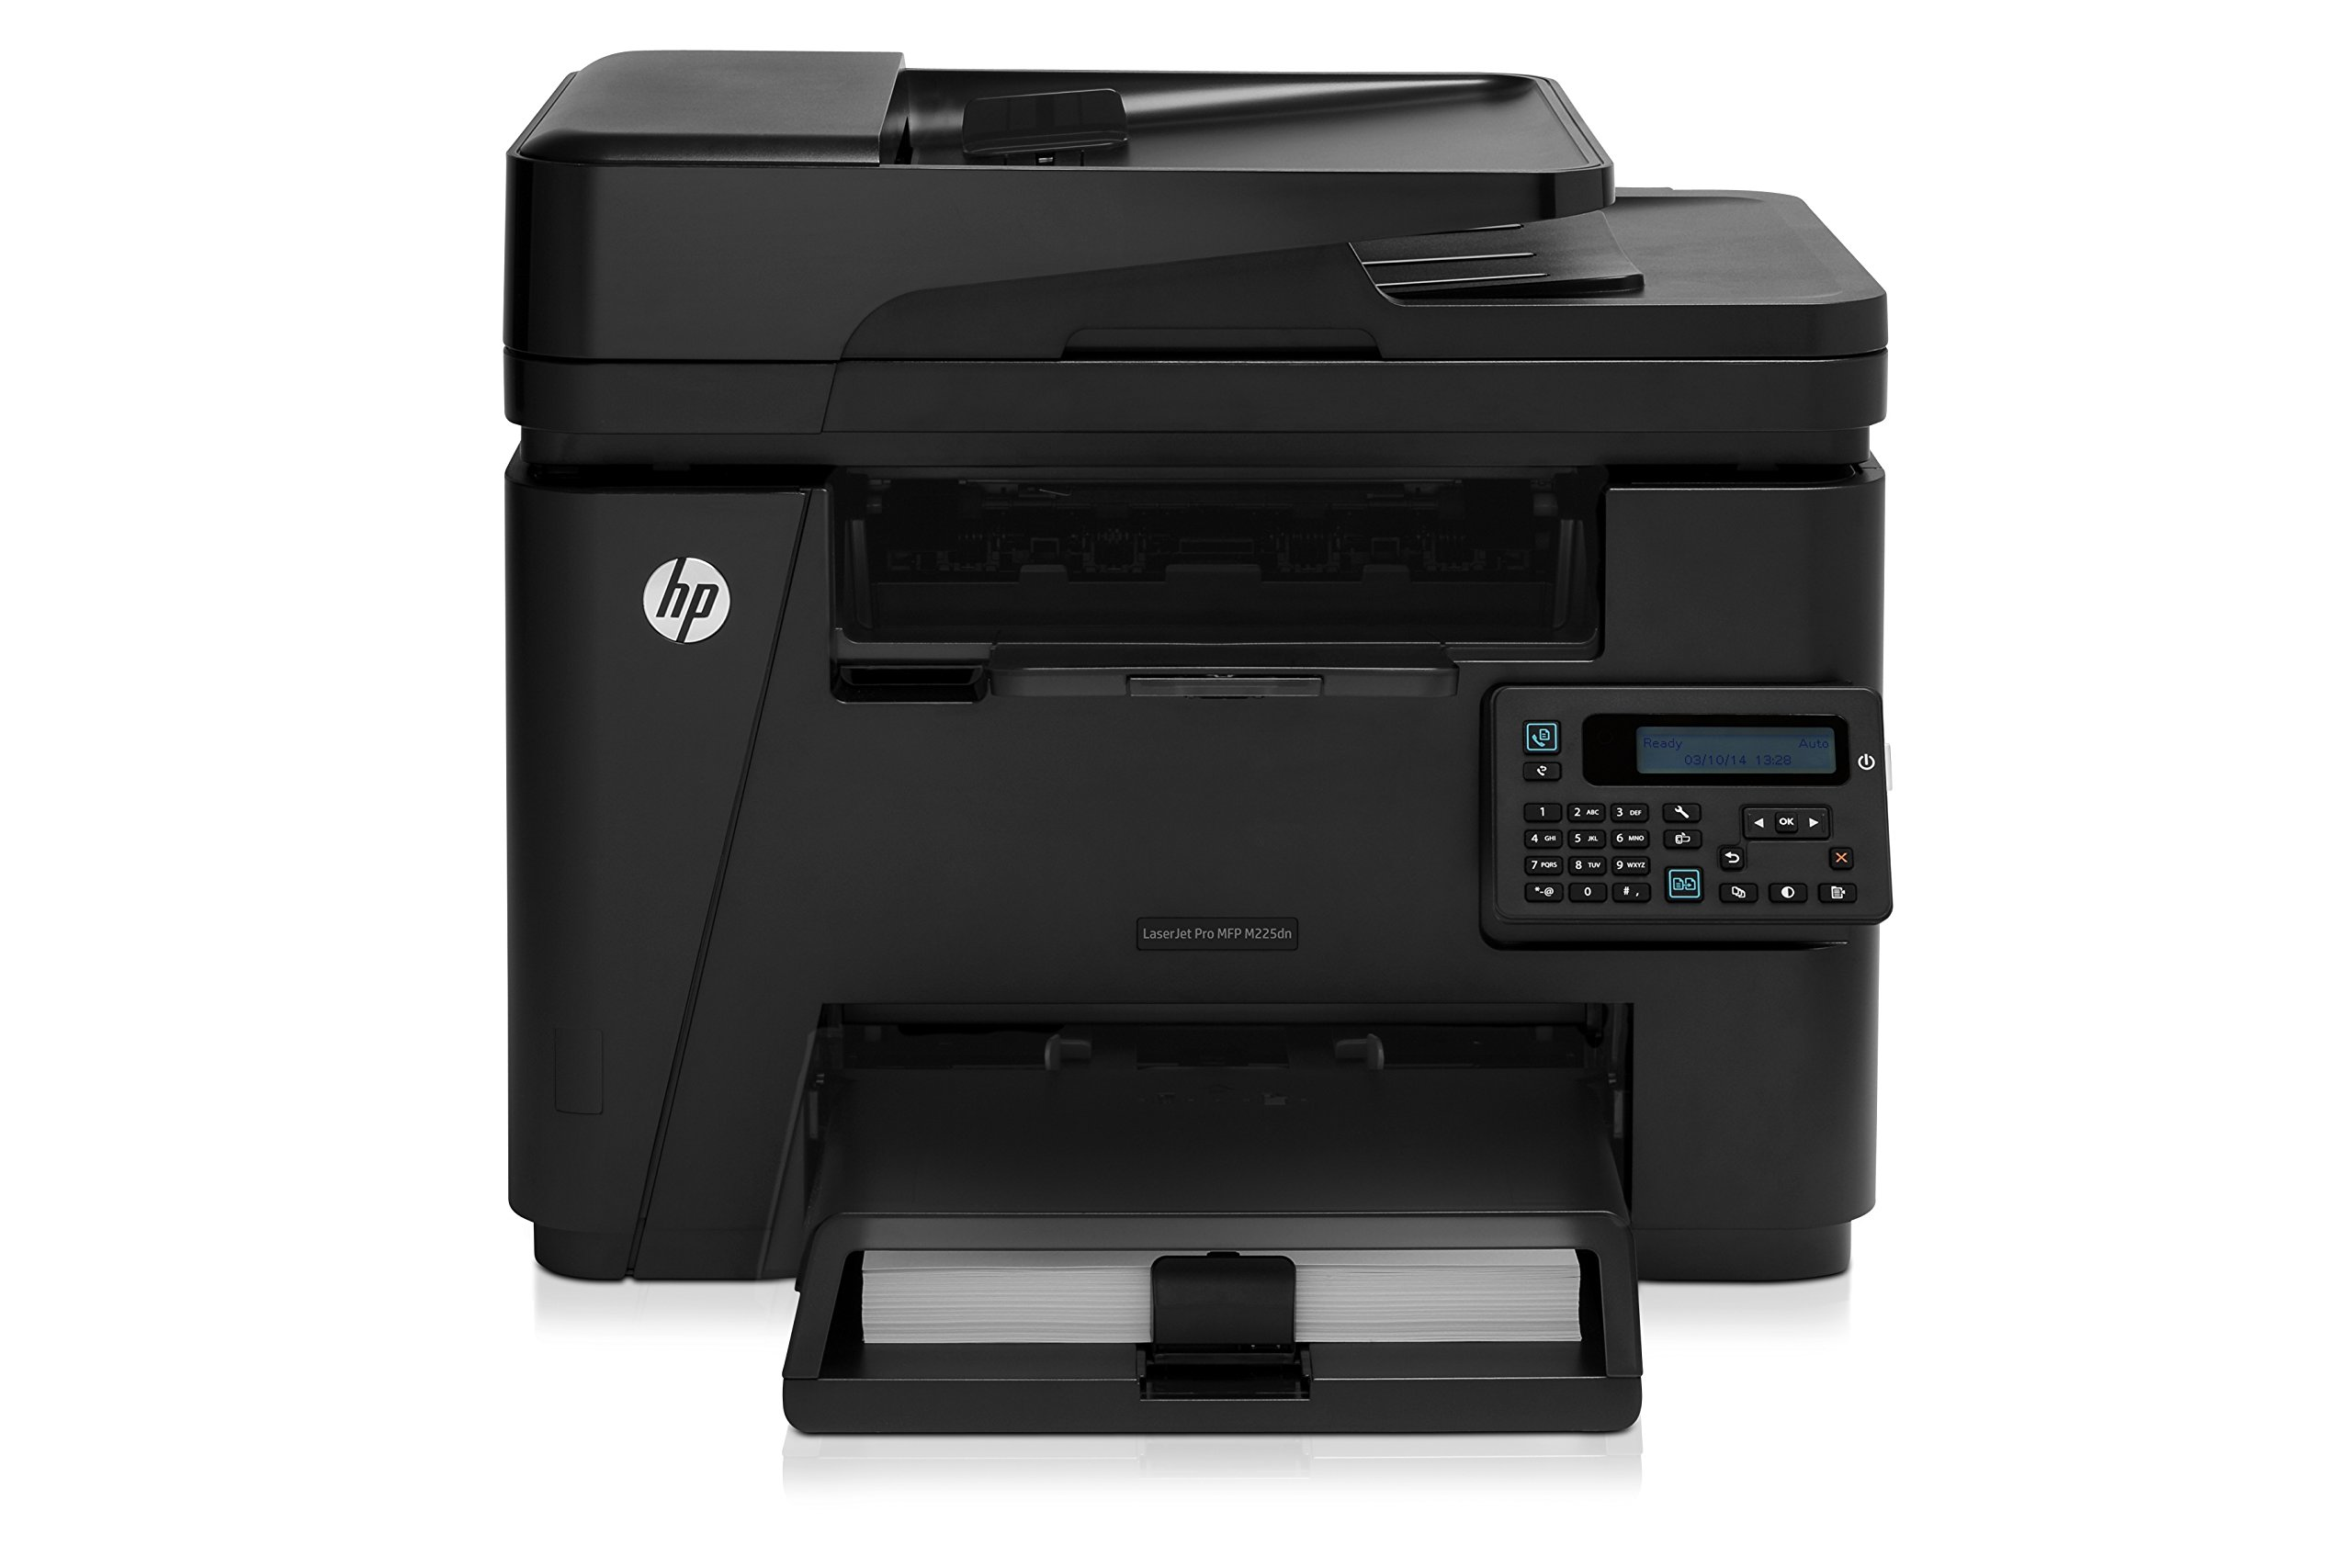 HP LaserJet Pro M225dn Monochrome Printer with Scanner, Copier and Fax, (CF484A)